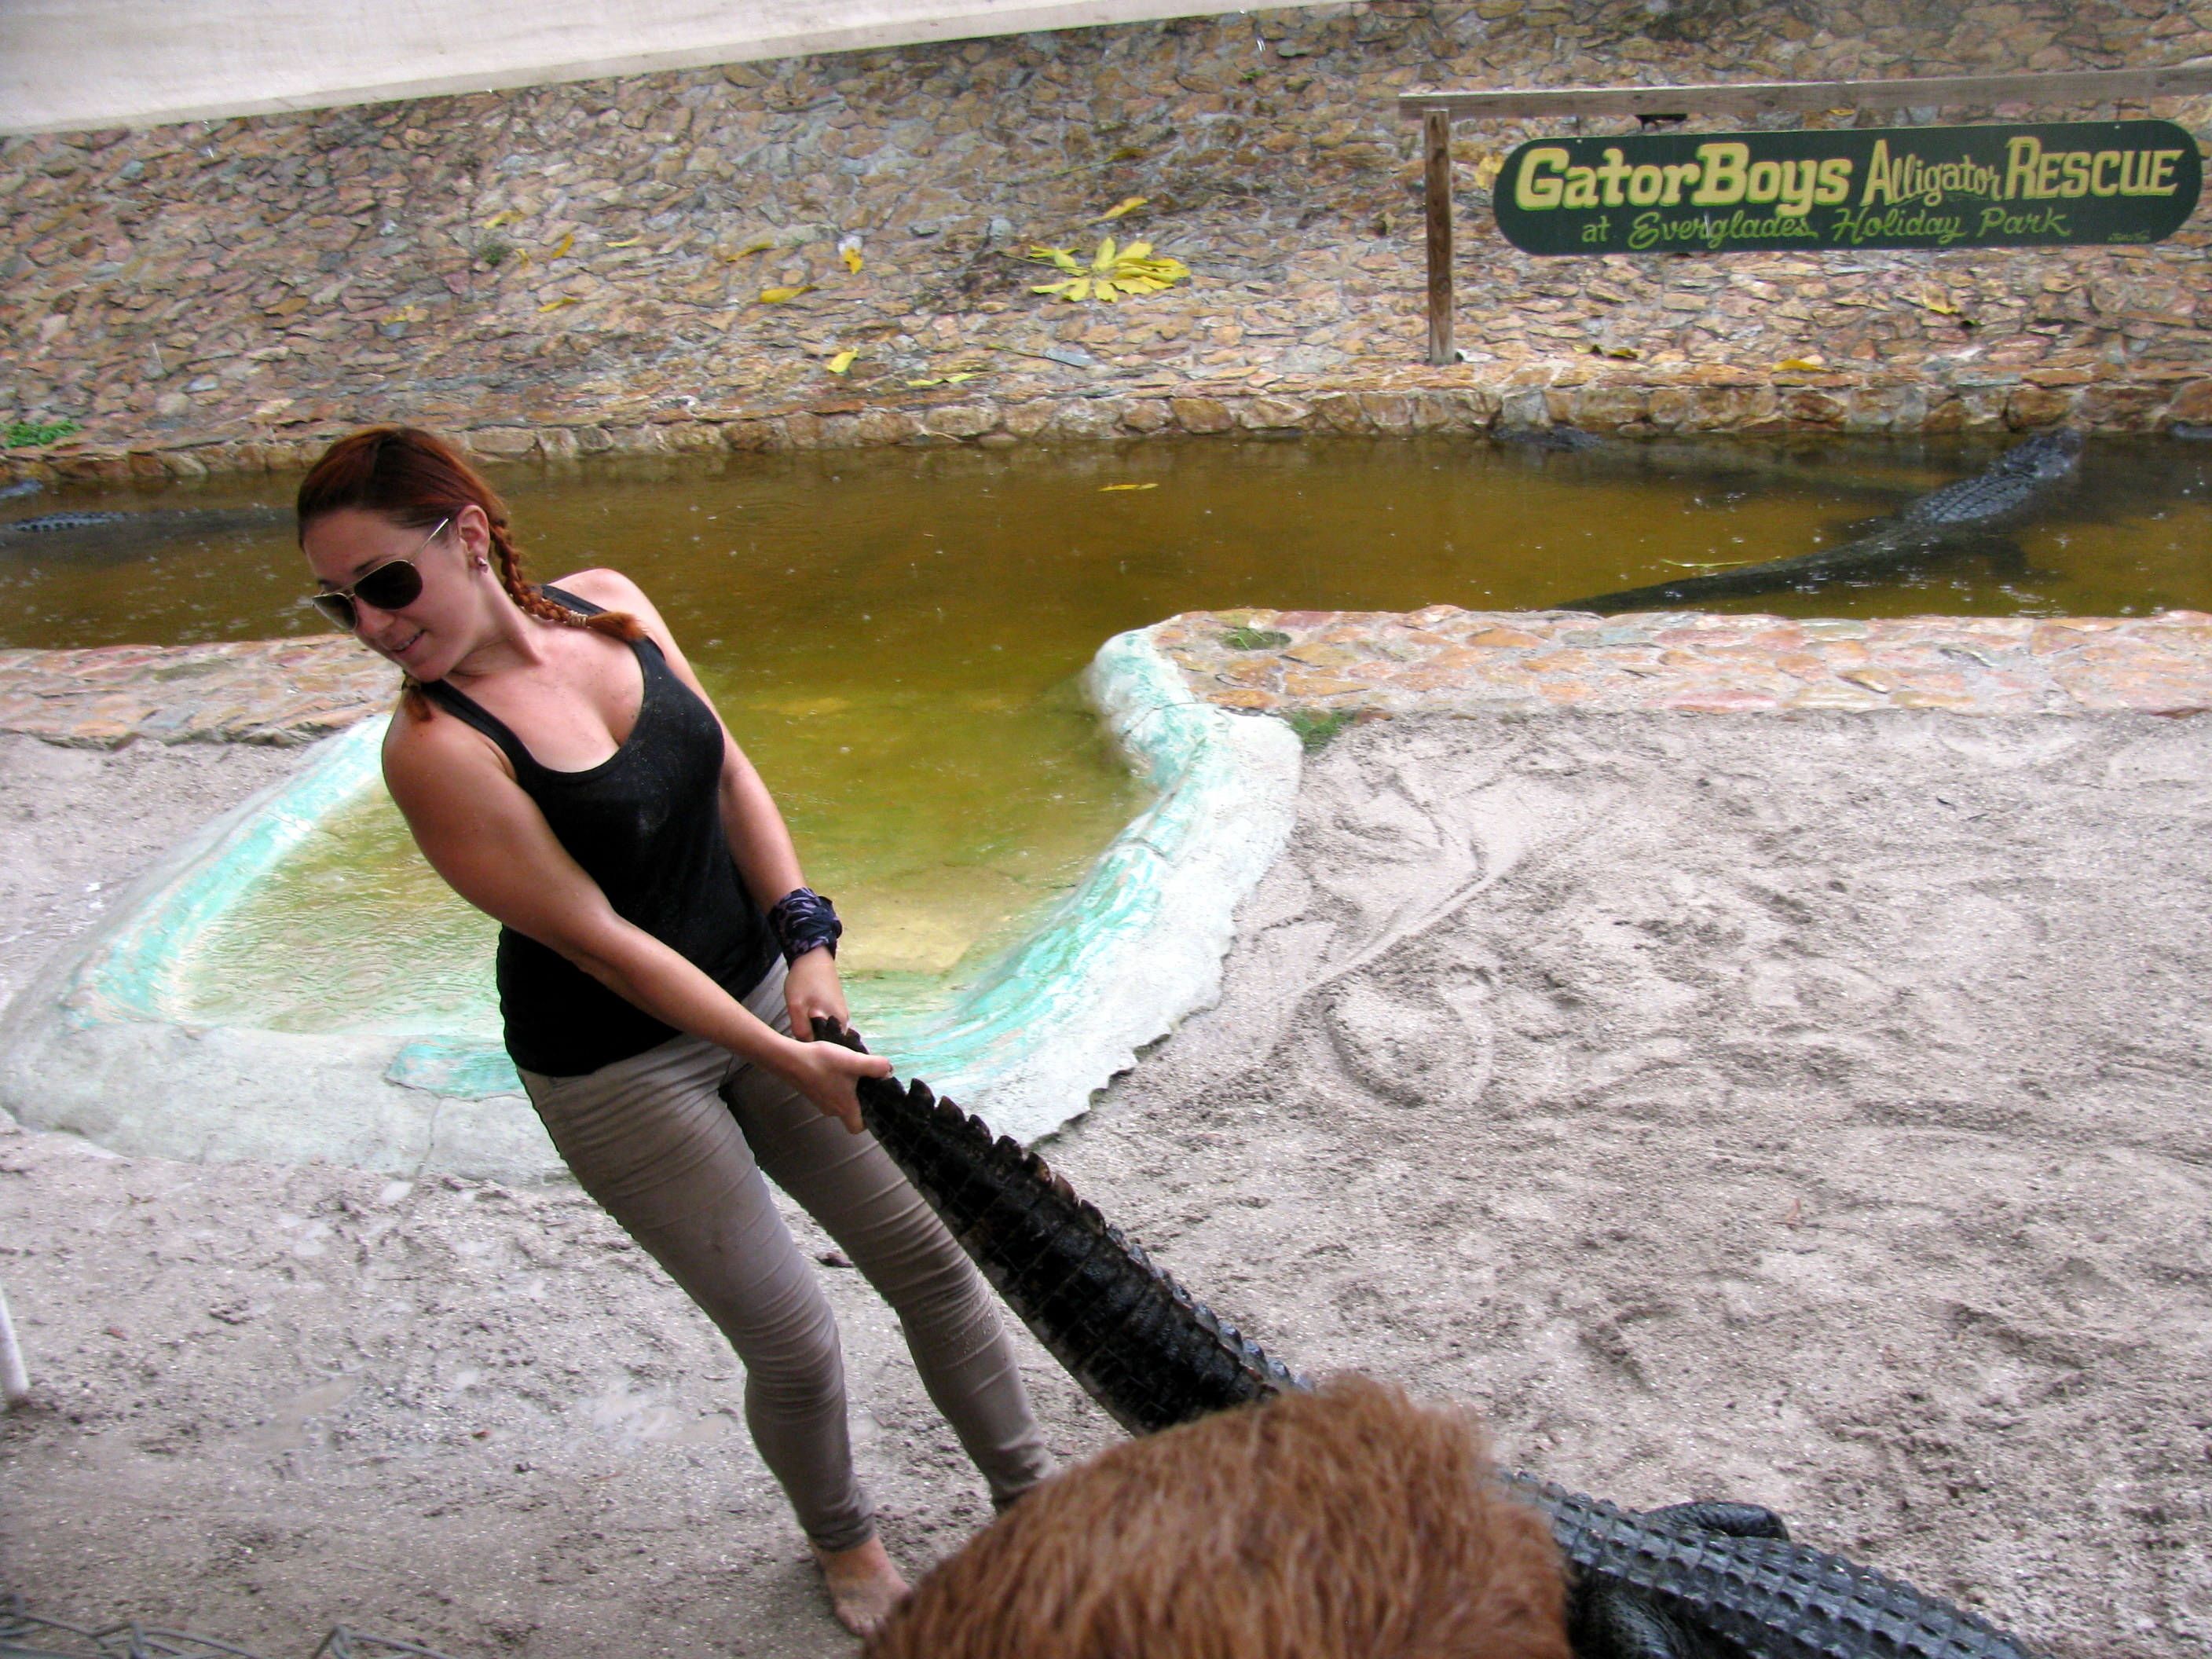 Ashley From Gator Boys http://daywellspent.wordpress.com/2012/08/13/everglades-holiday-park/gator-boys-ashley-got-a-gator-by-the-tail/